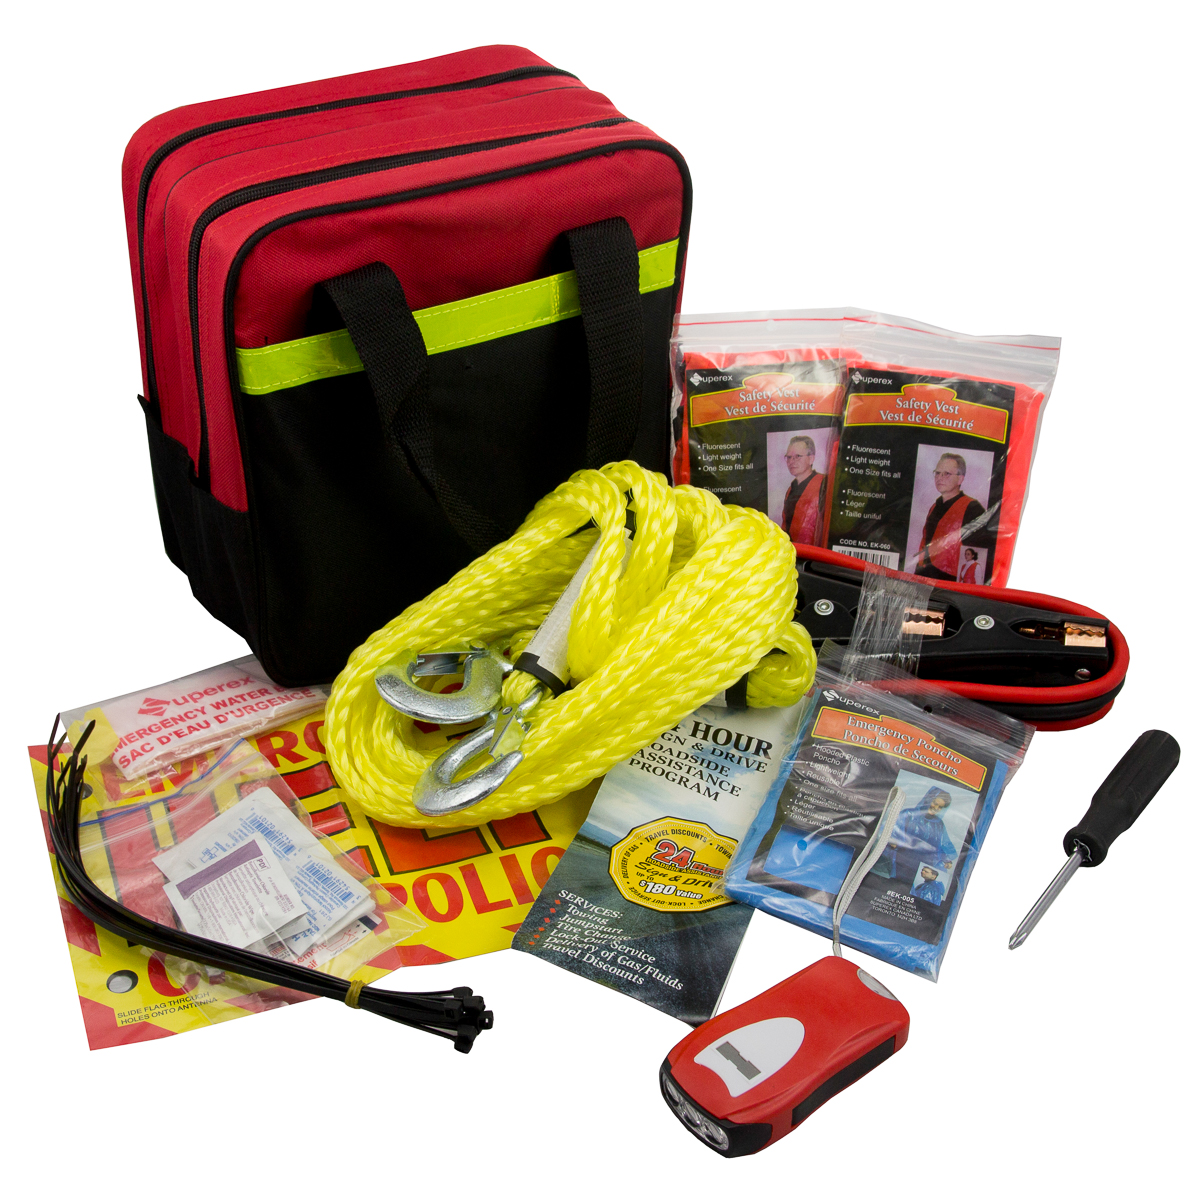 39pc Safe to Go Roadside Auto Safety First Aid Kit Jumper Cables Flashlight SOS Sign Bag